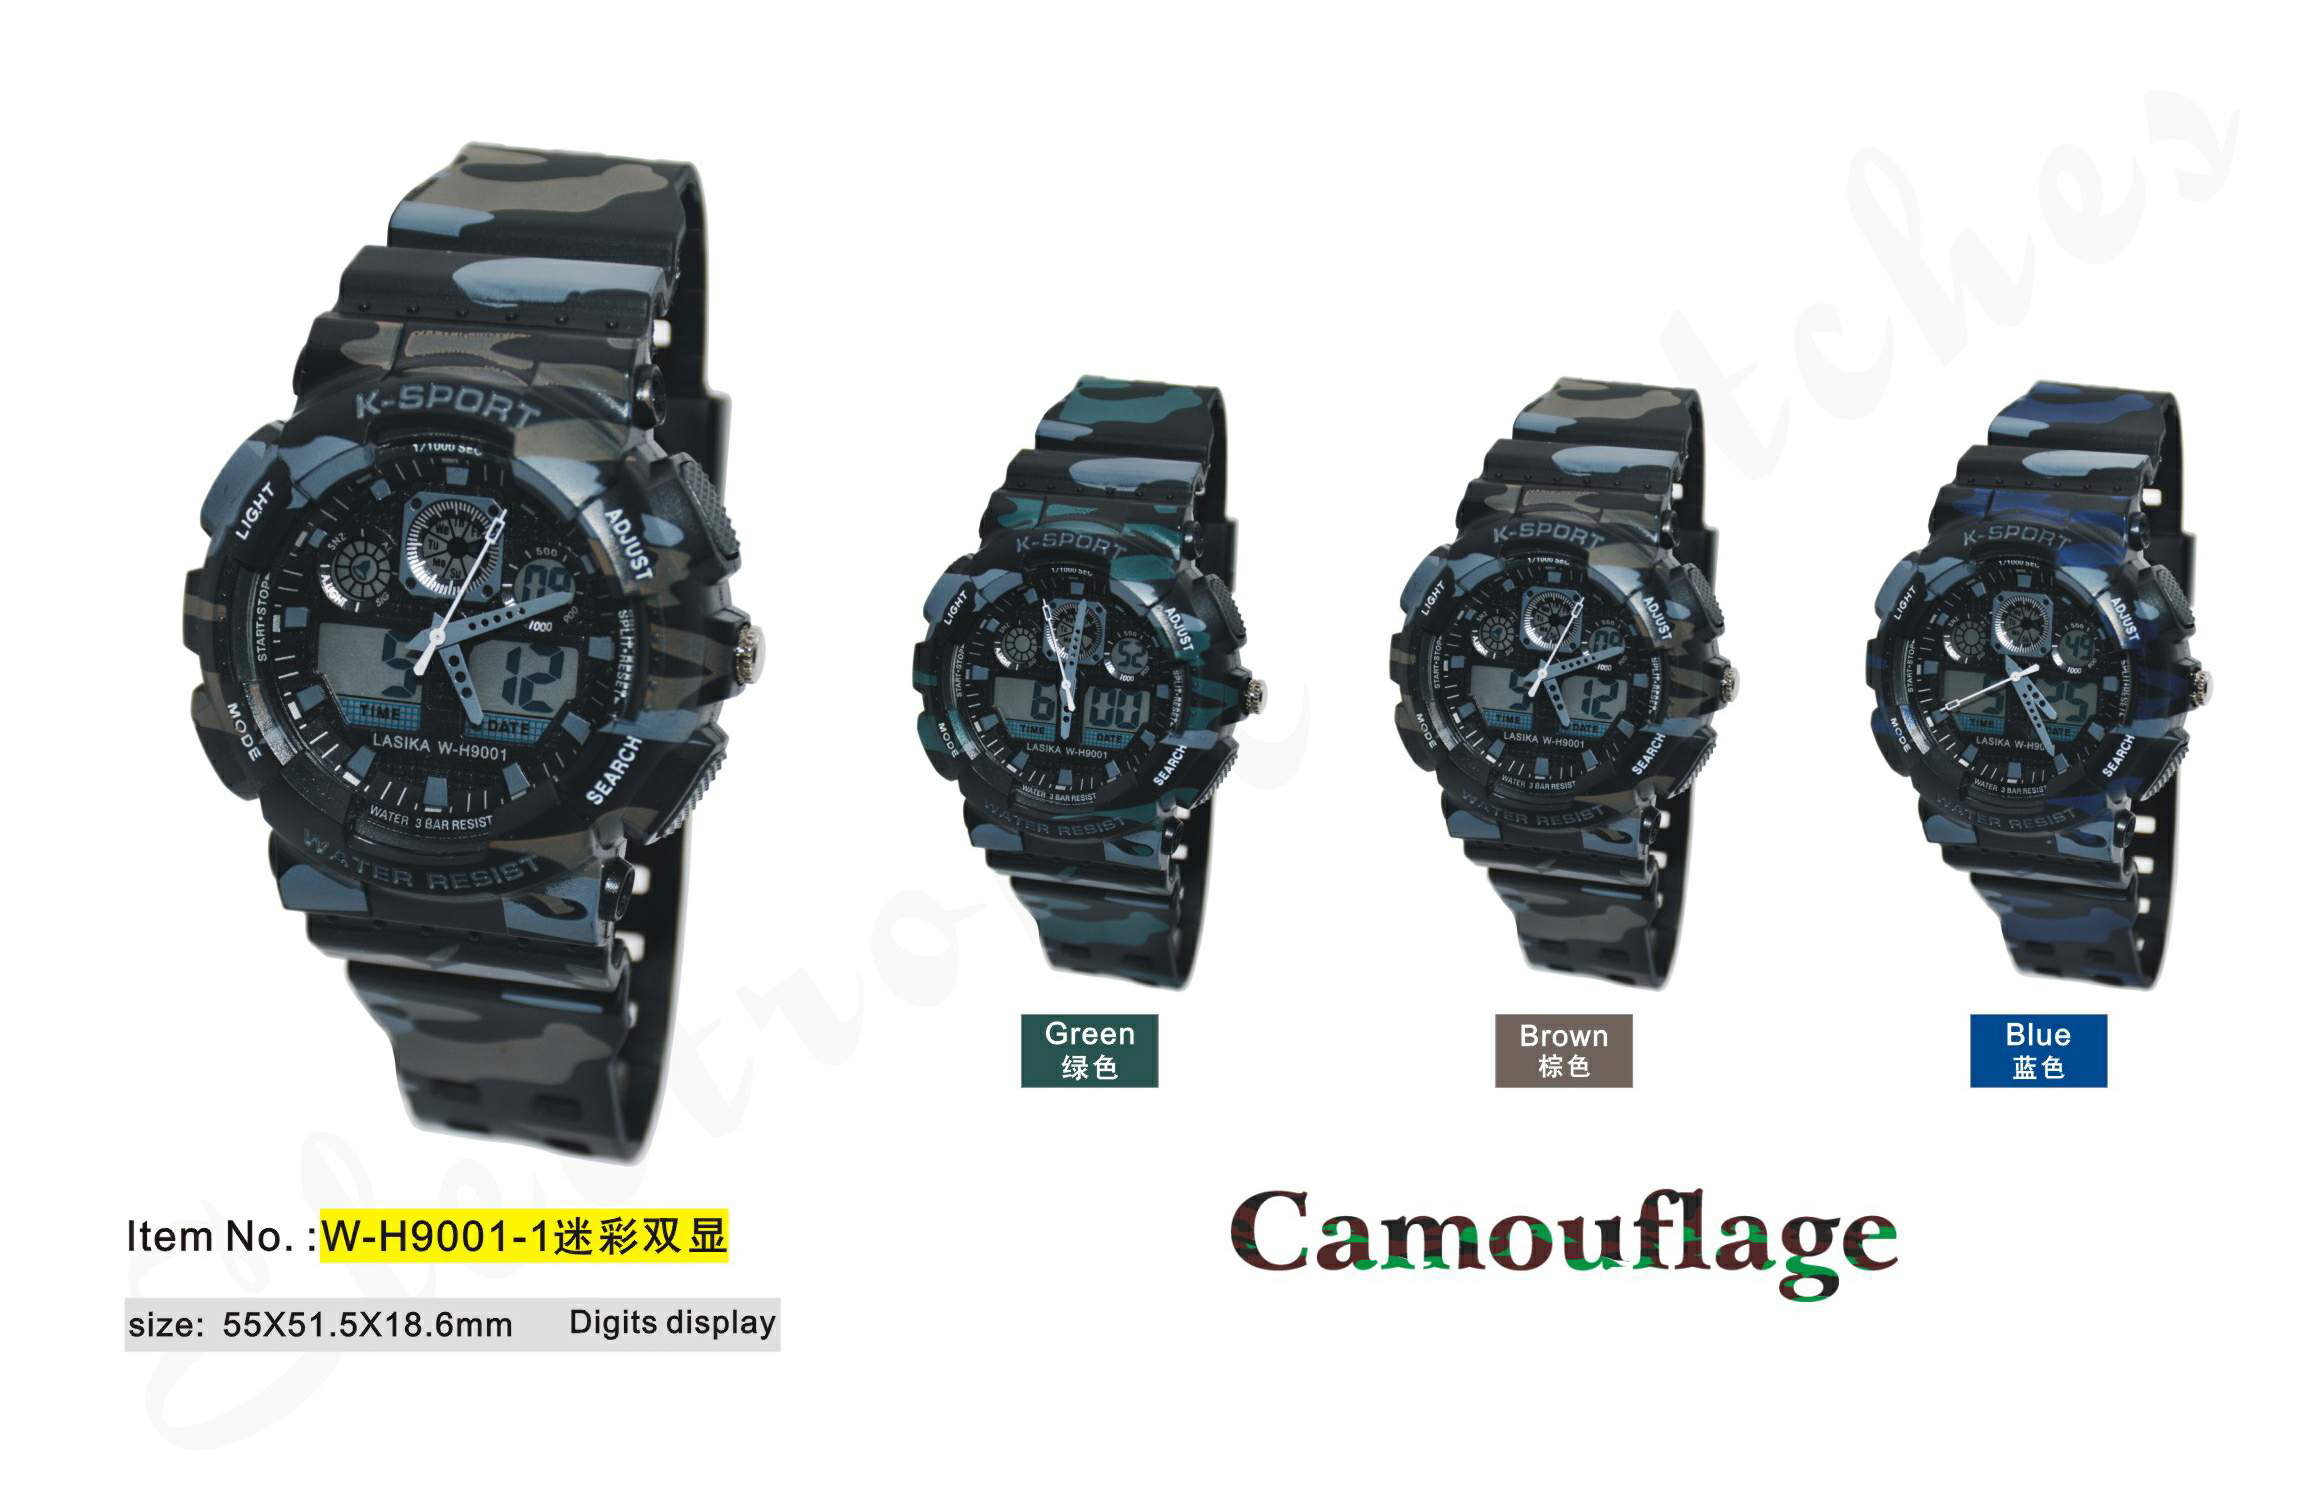 W-H9001 camouflage